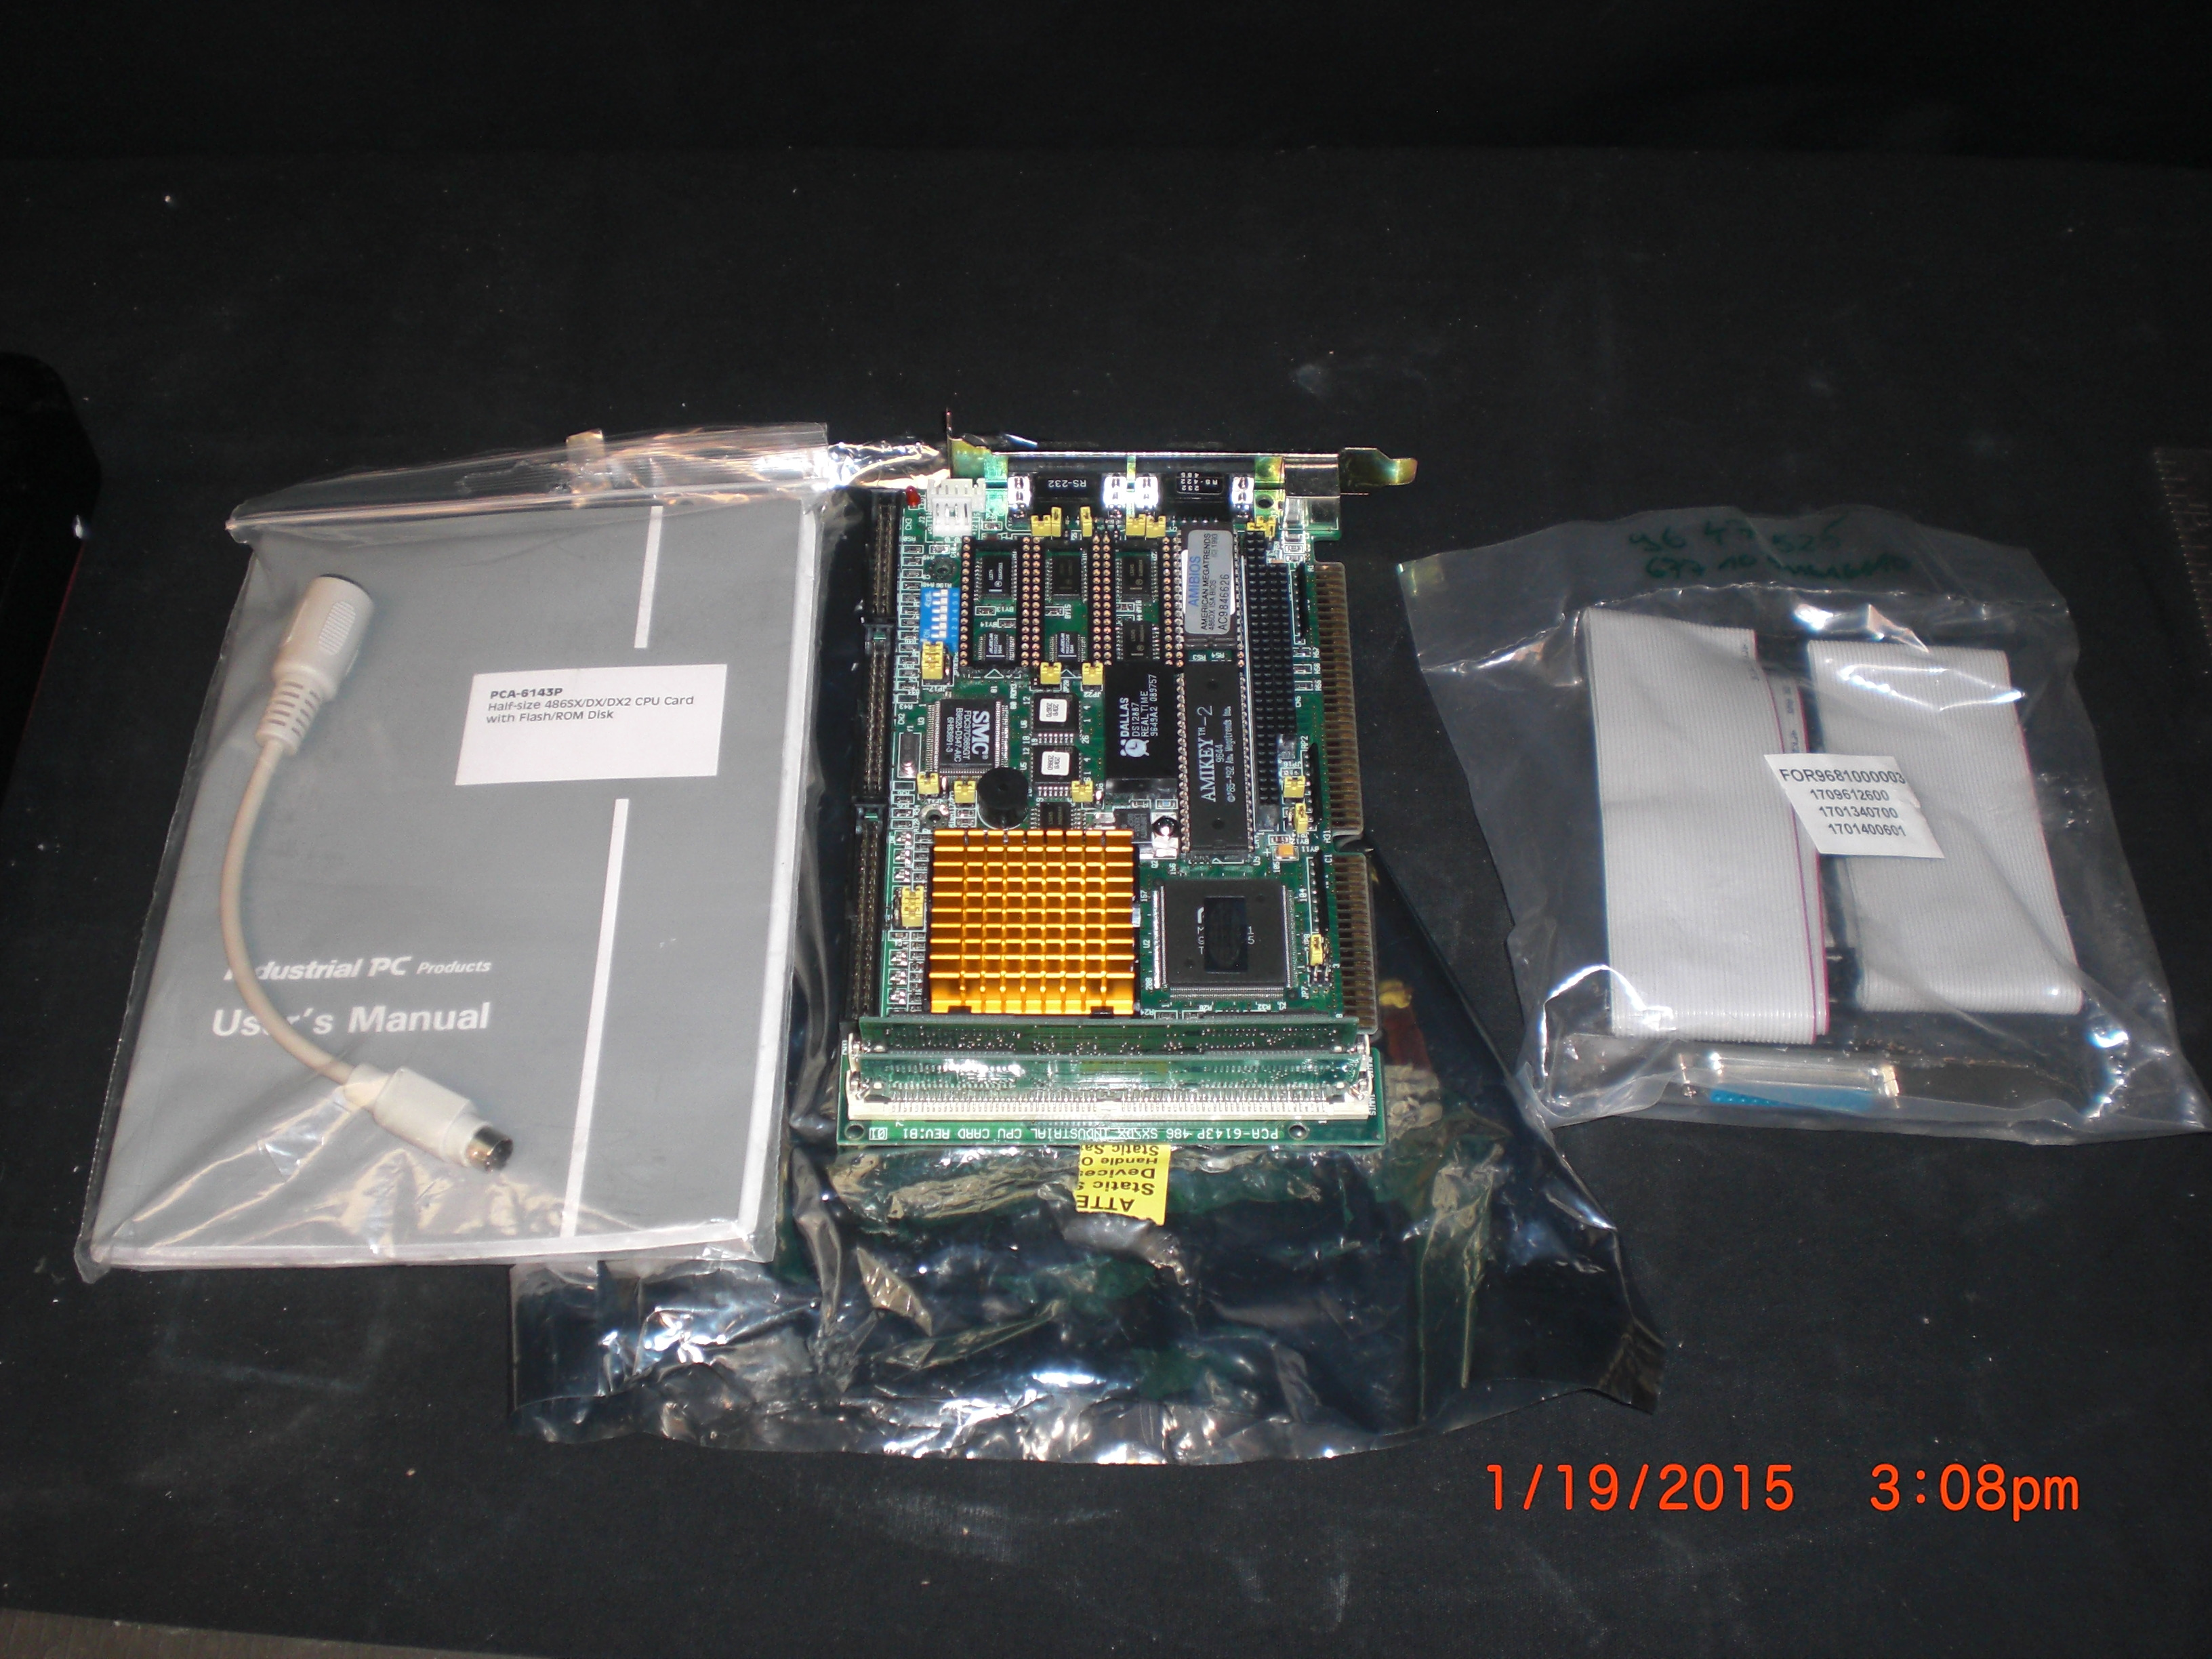 Computer Accessory PCA-6143P Industrial PC Half Size 486SX/DX/DX2 CPU Card with Flash/ROM Disk